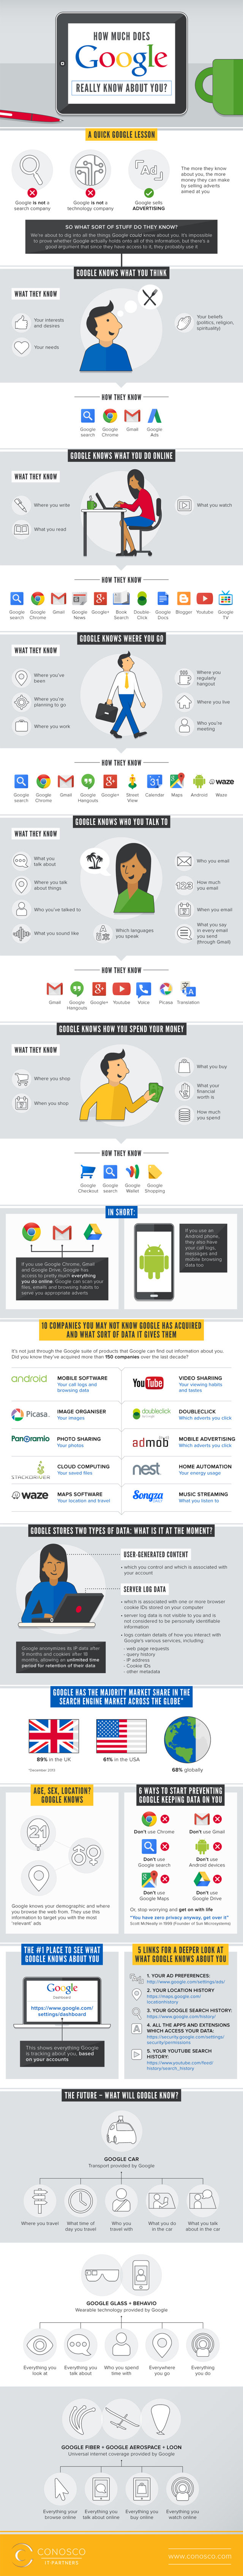 Big Brother Alert! What #Google Knows About Your Online Habits #Infographic